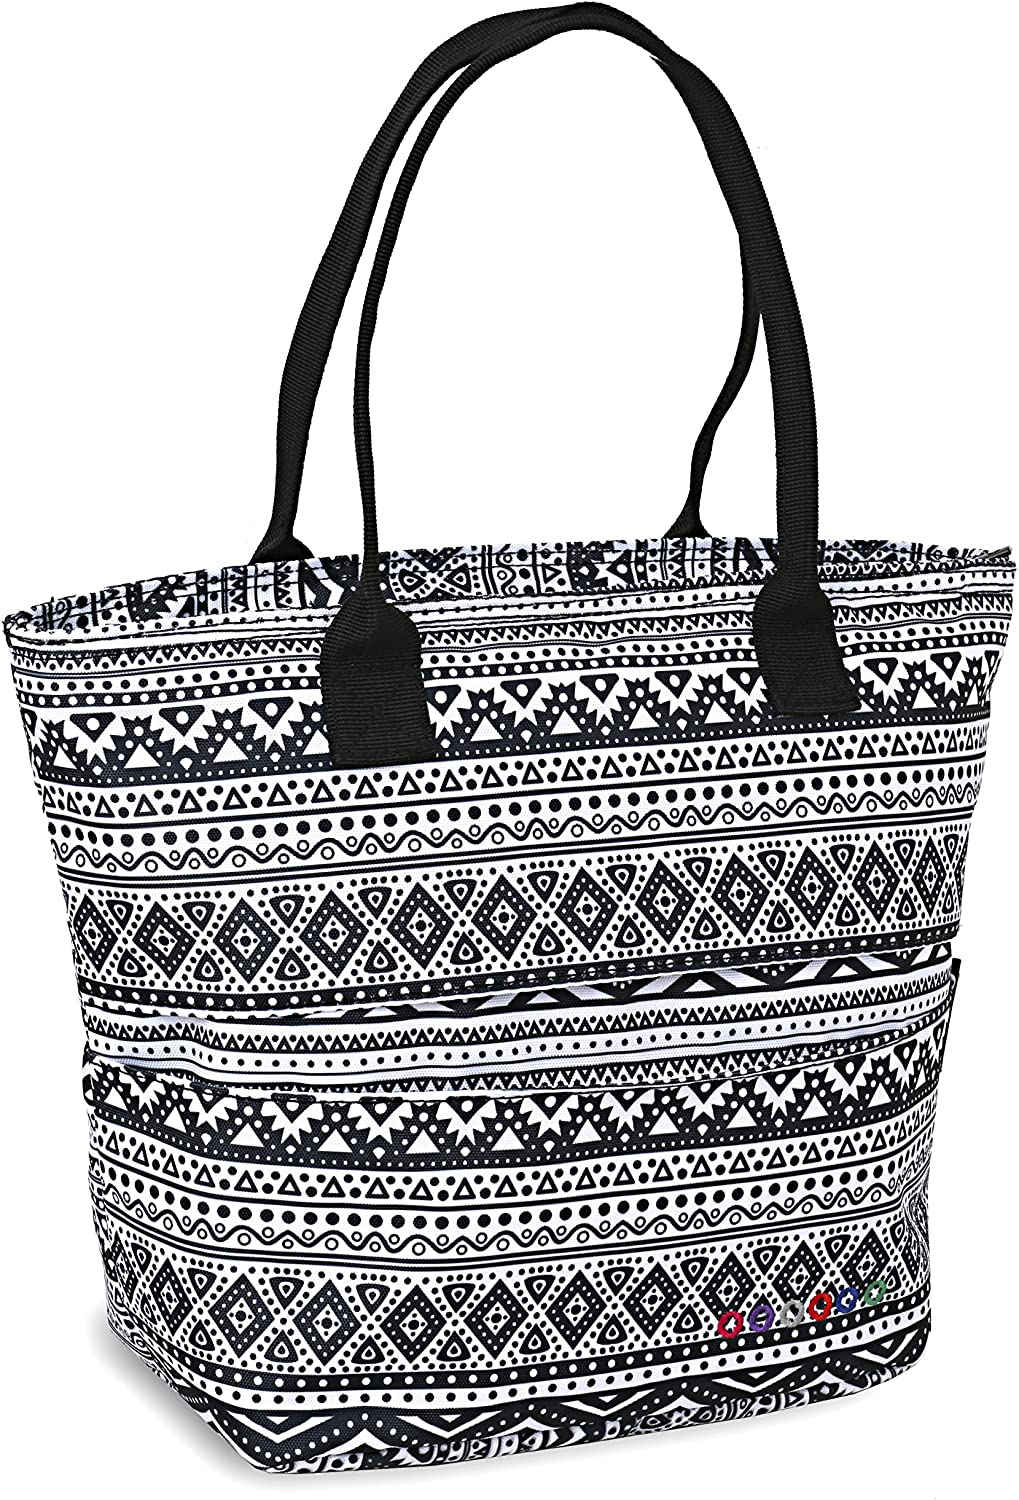 J World New York Lola Lunch Tote, Tribal, One Size